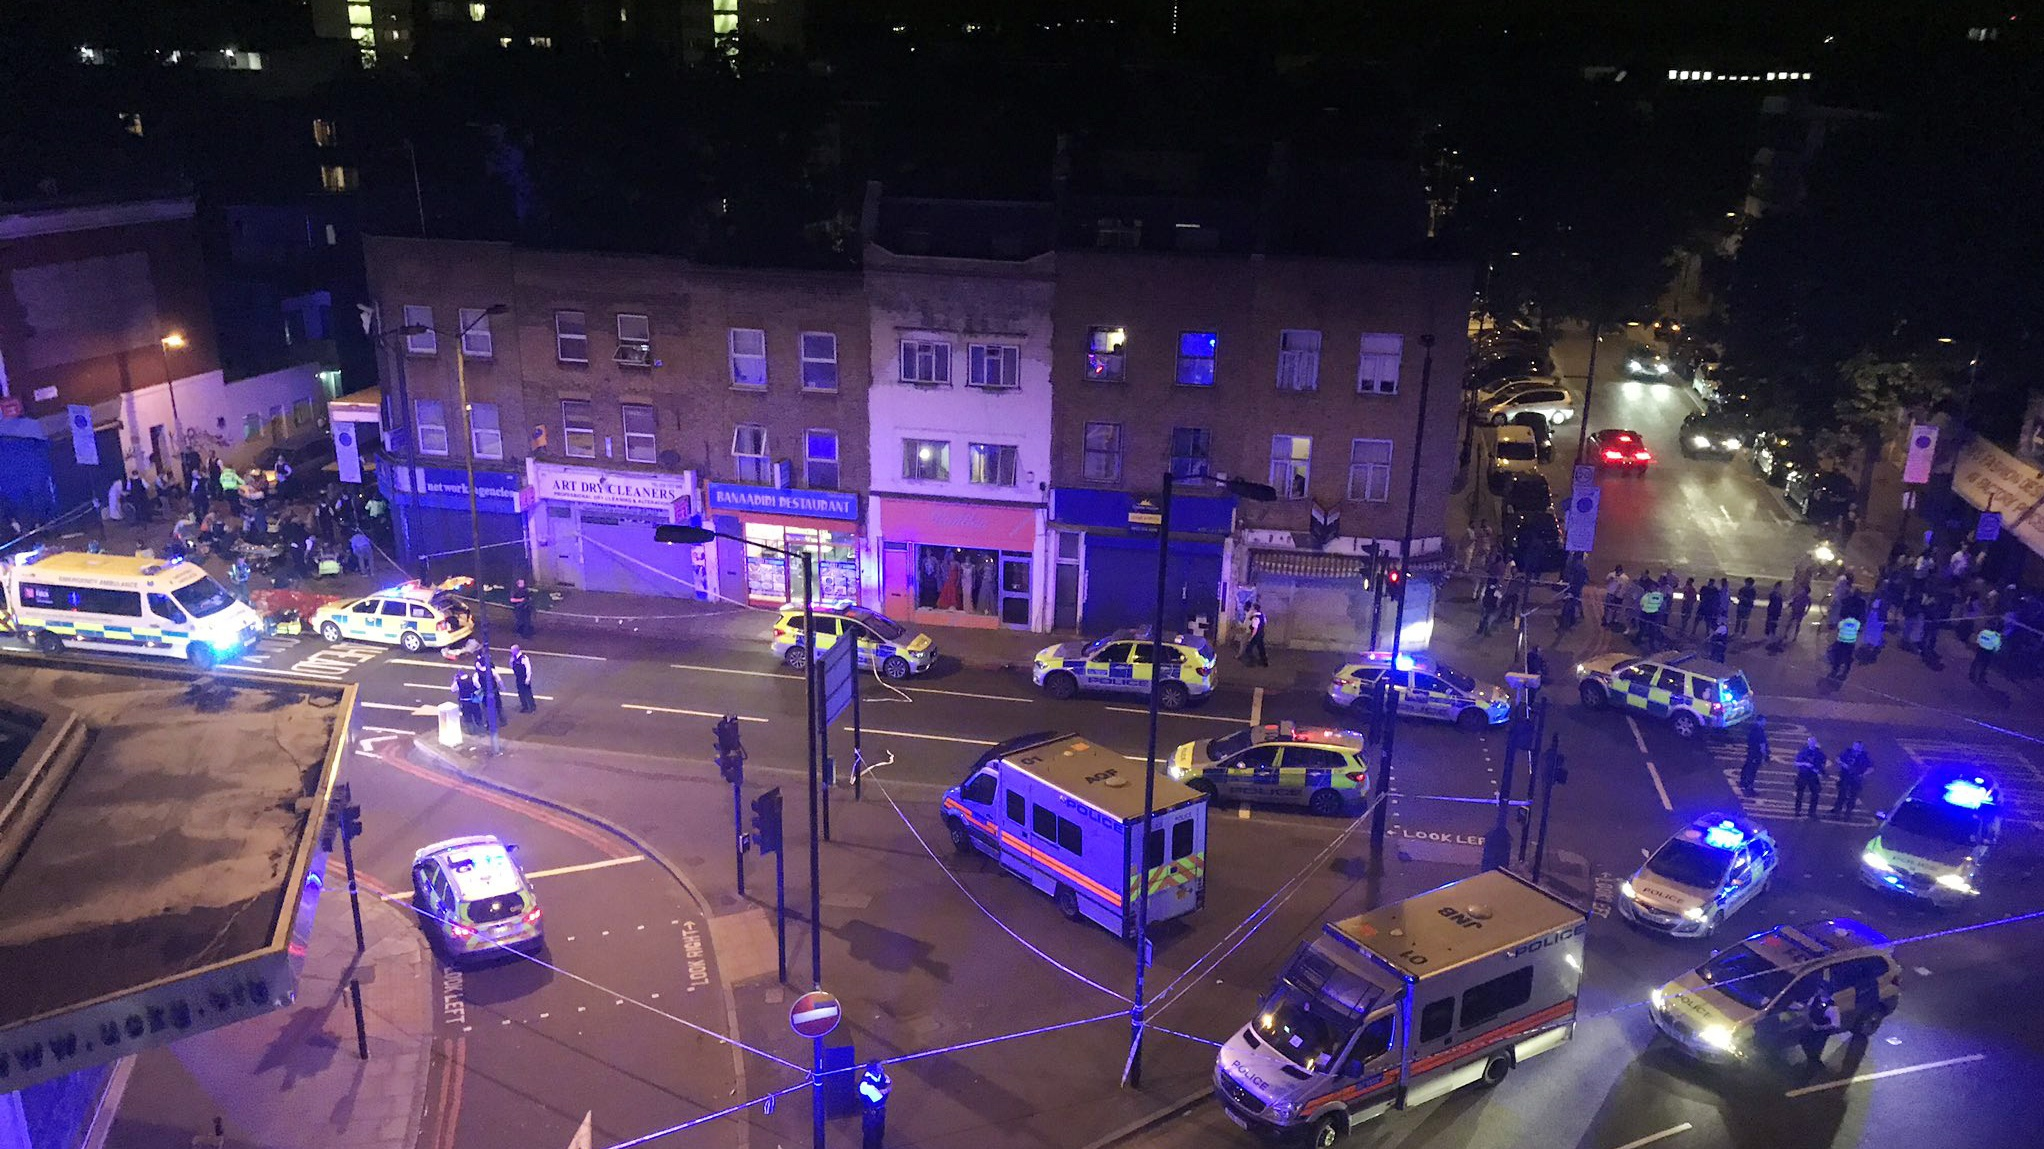 1 arrested after vehicle strikes pedestrians in London